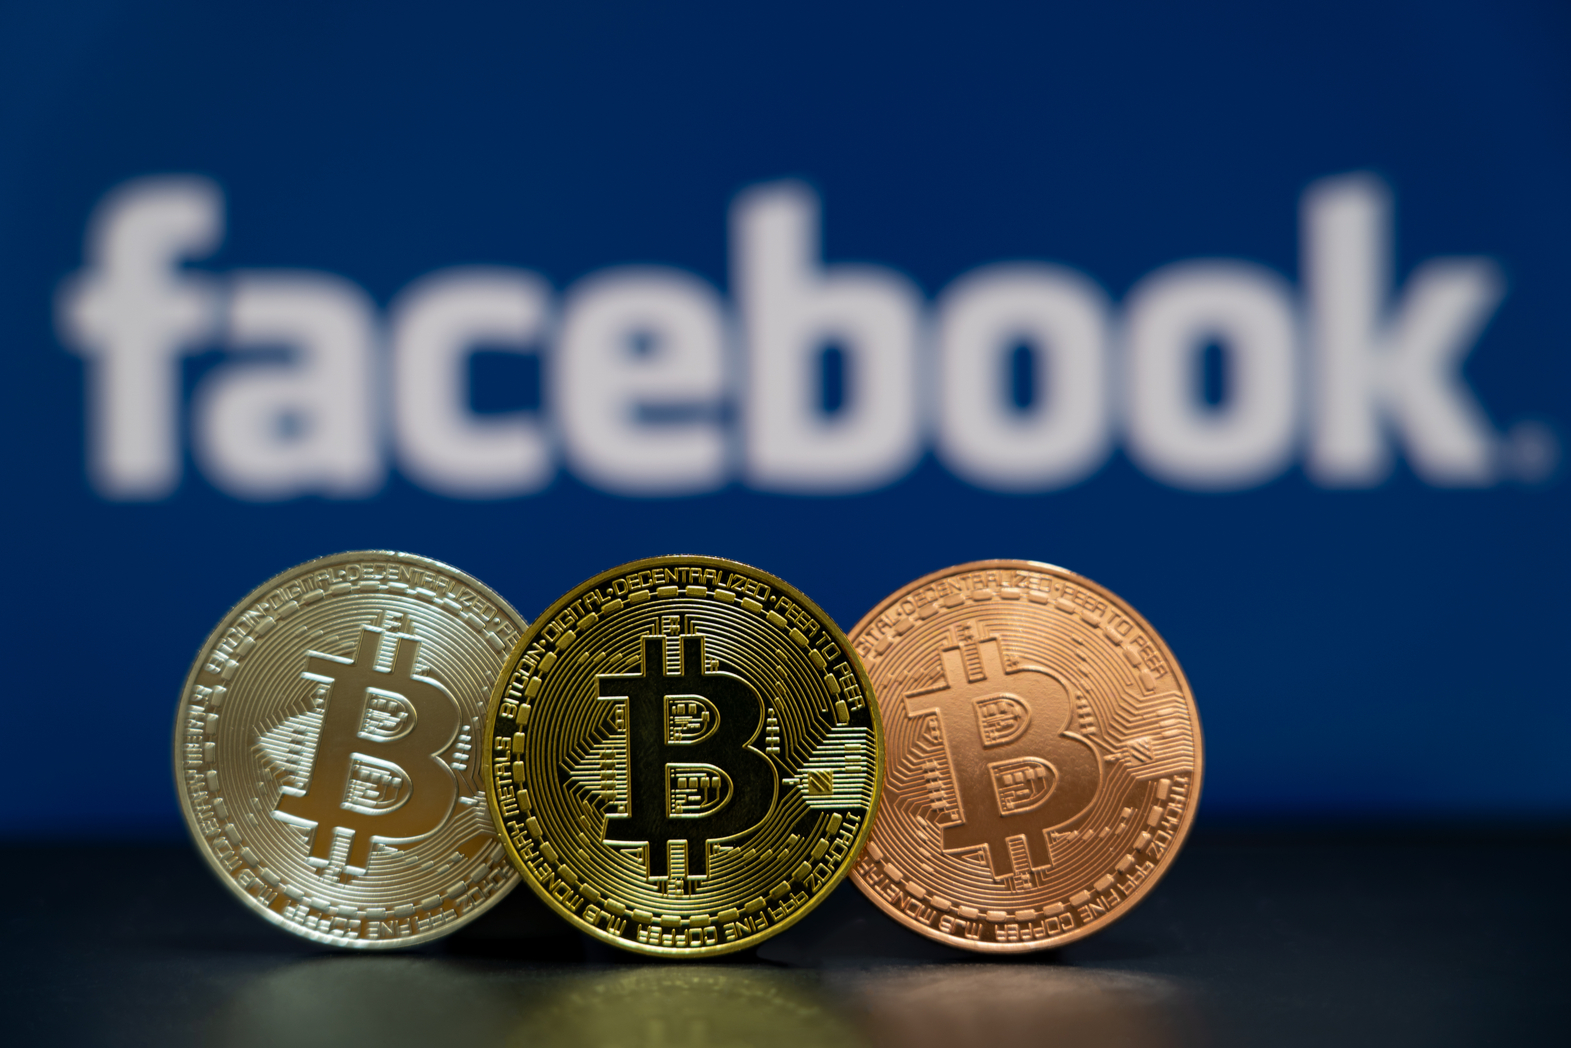 Facebook cryptocurrency launch: Is it time to buy Bitcoin again?